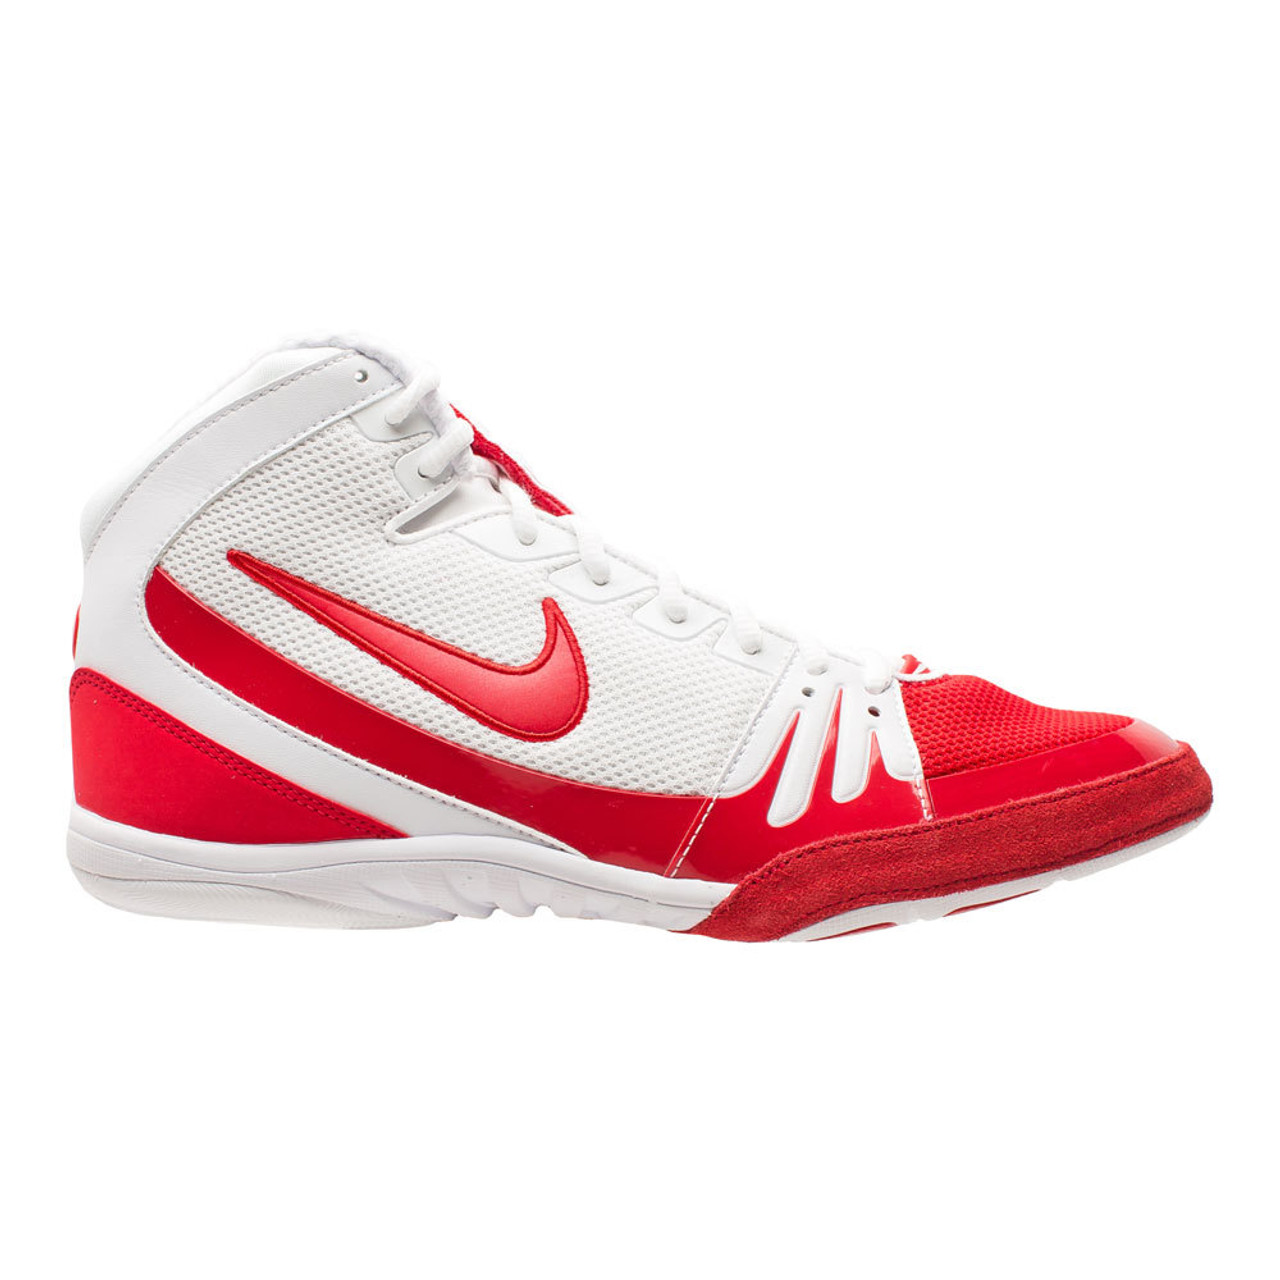 cheap for discount 4e431 2846b Nike Freek Training Boots Red White